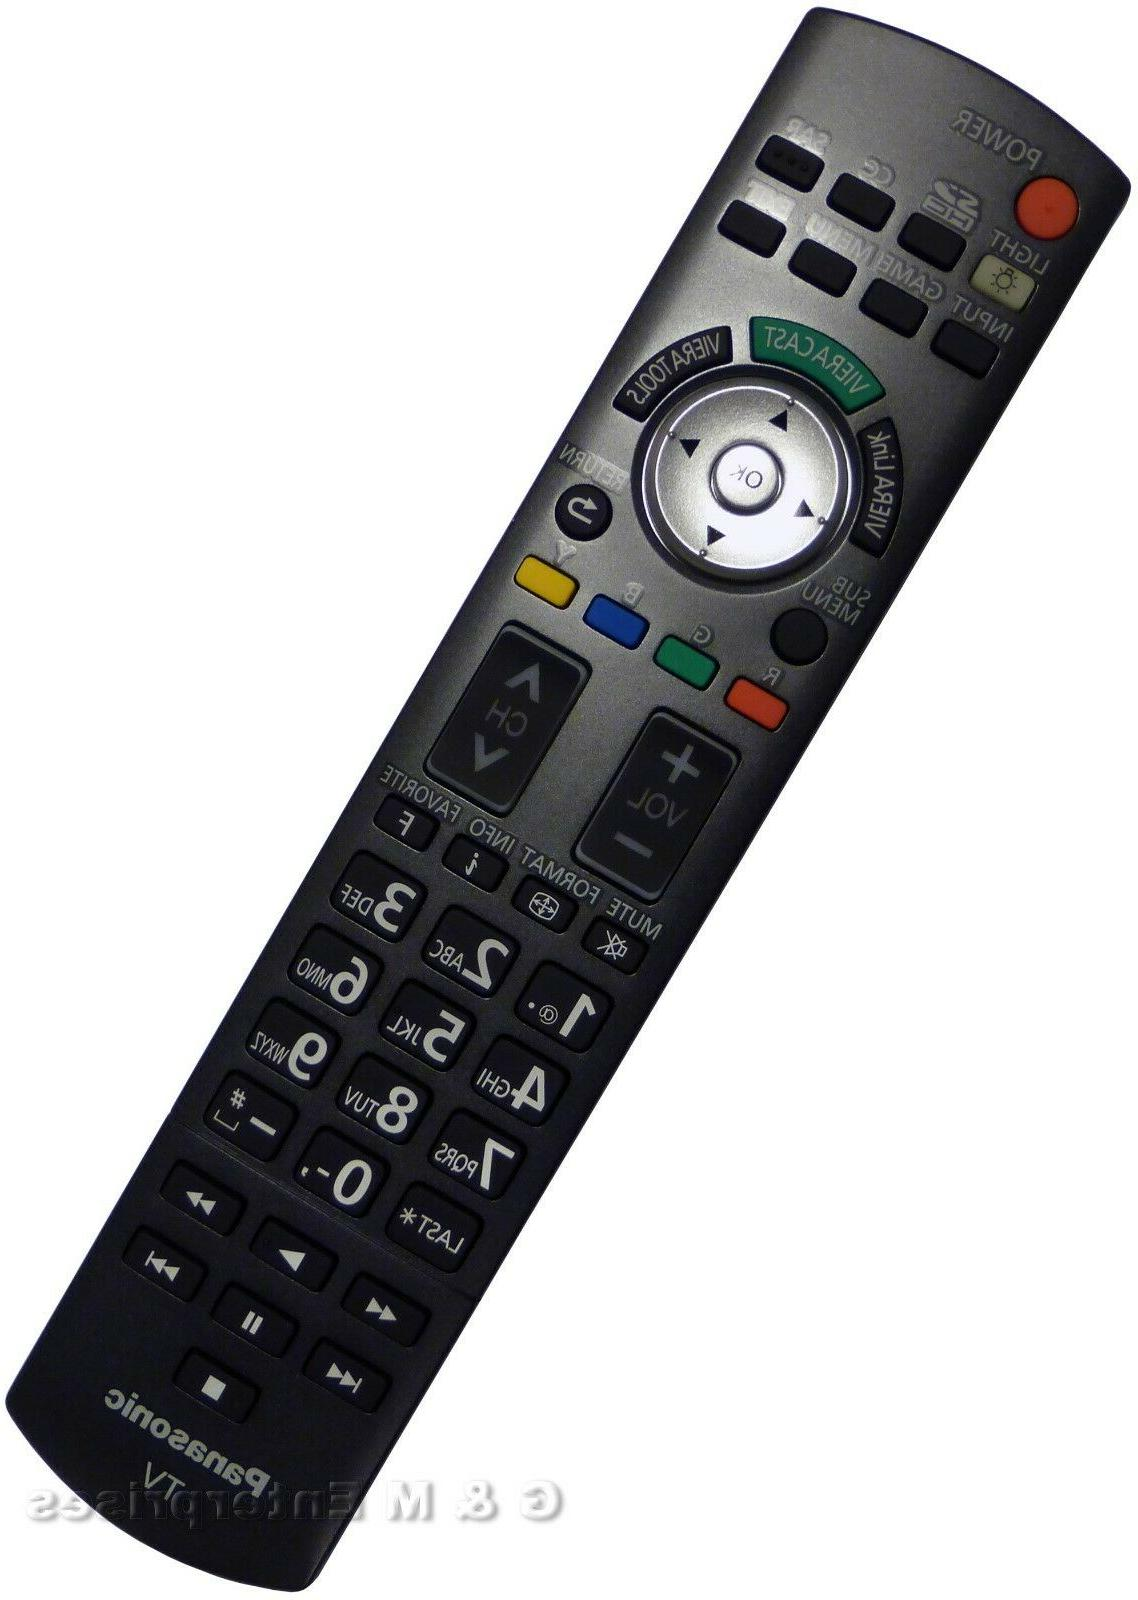 new n2qayb000322 remote control for many 2009